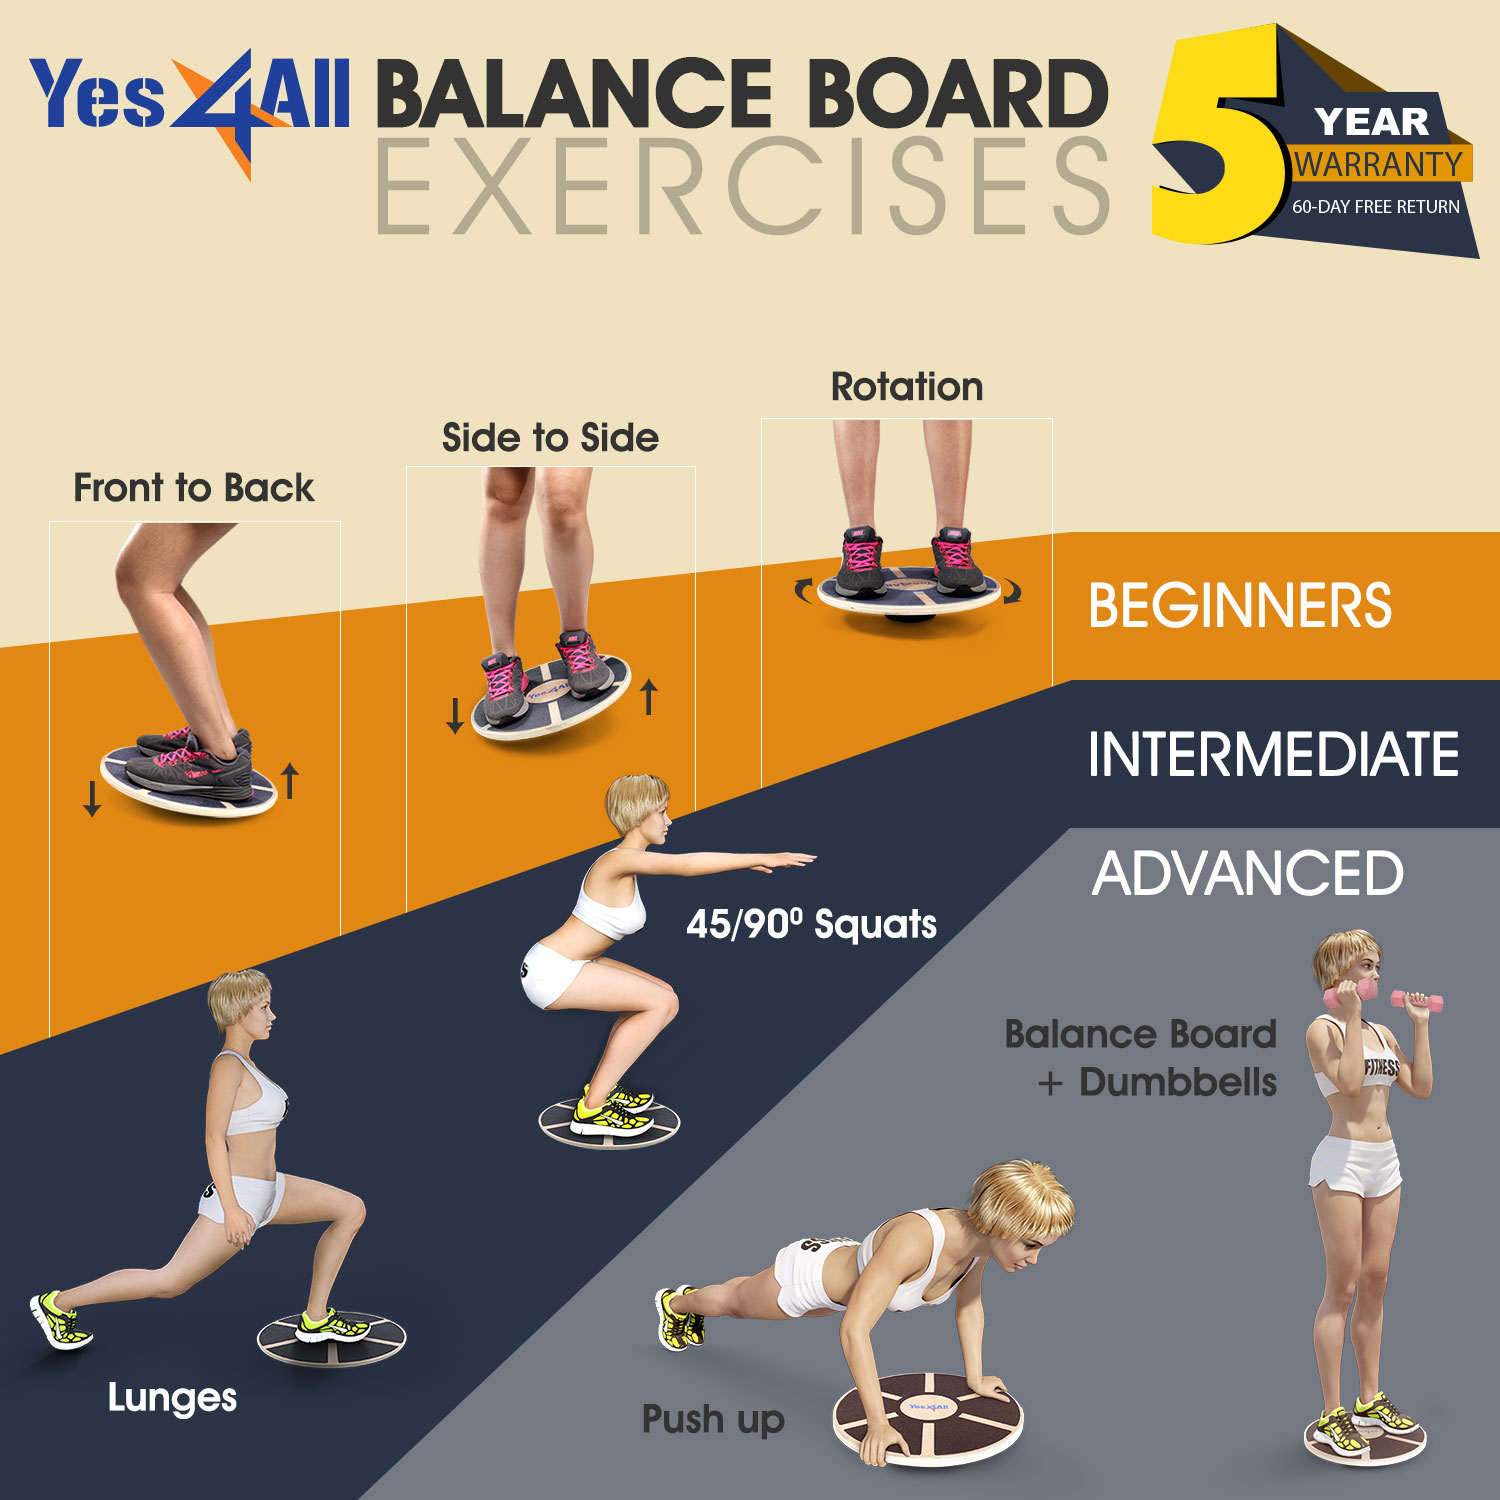 Exercise Balance Stability Trainer 15.75 Quality First Fitness Equipment & Gear Yes4all Wooden Wobble Balance Board